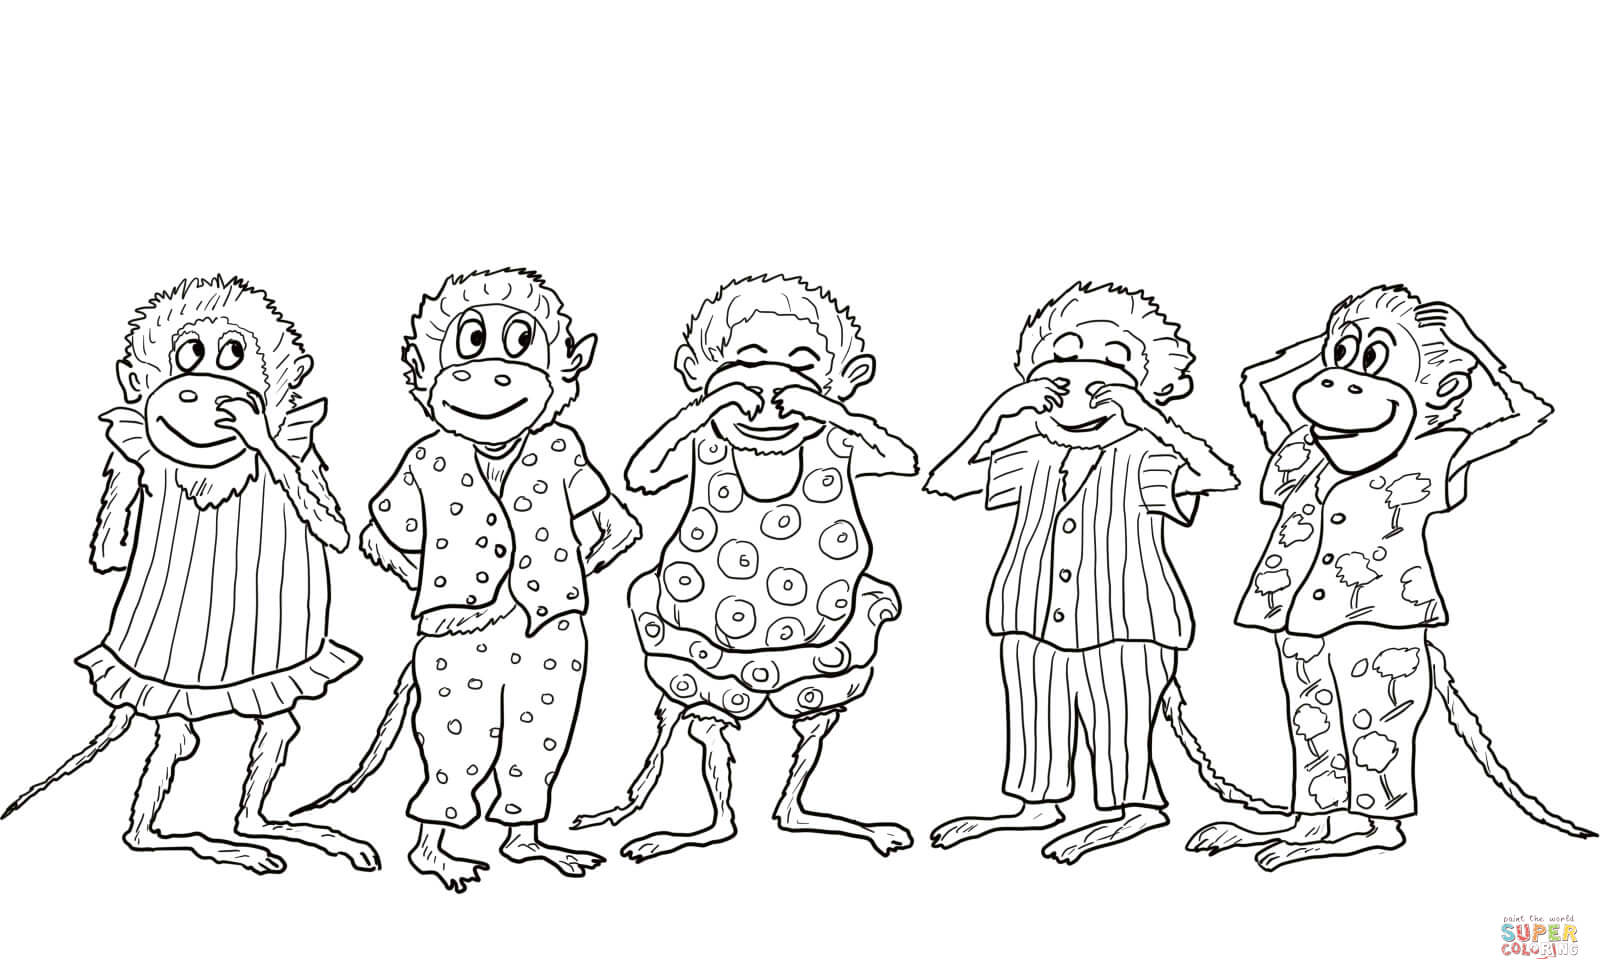 5 little monkeys jumping on the bed coloring pages photo - 1